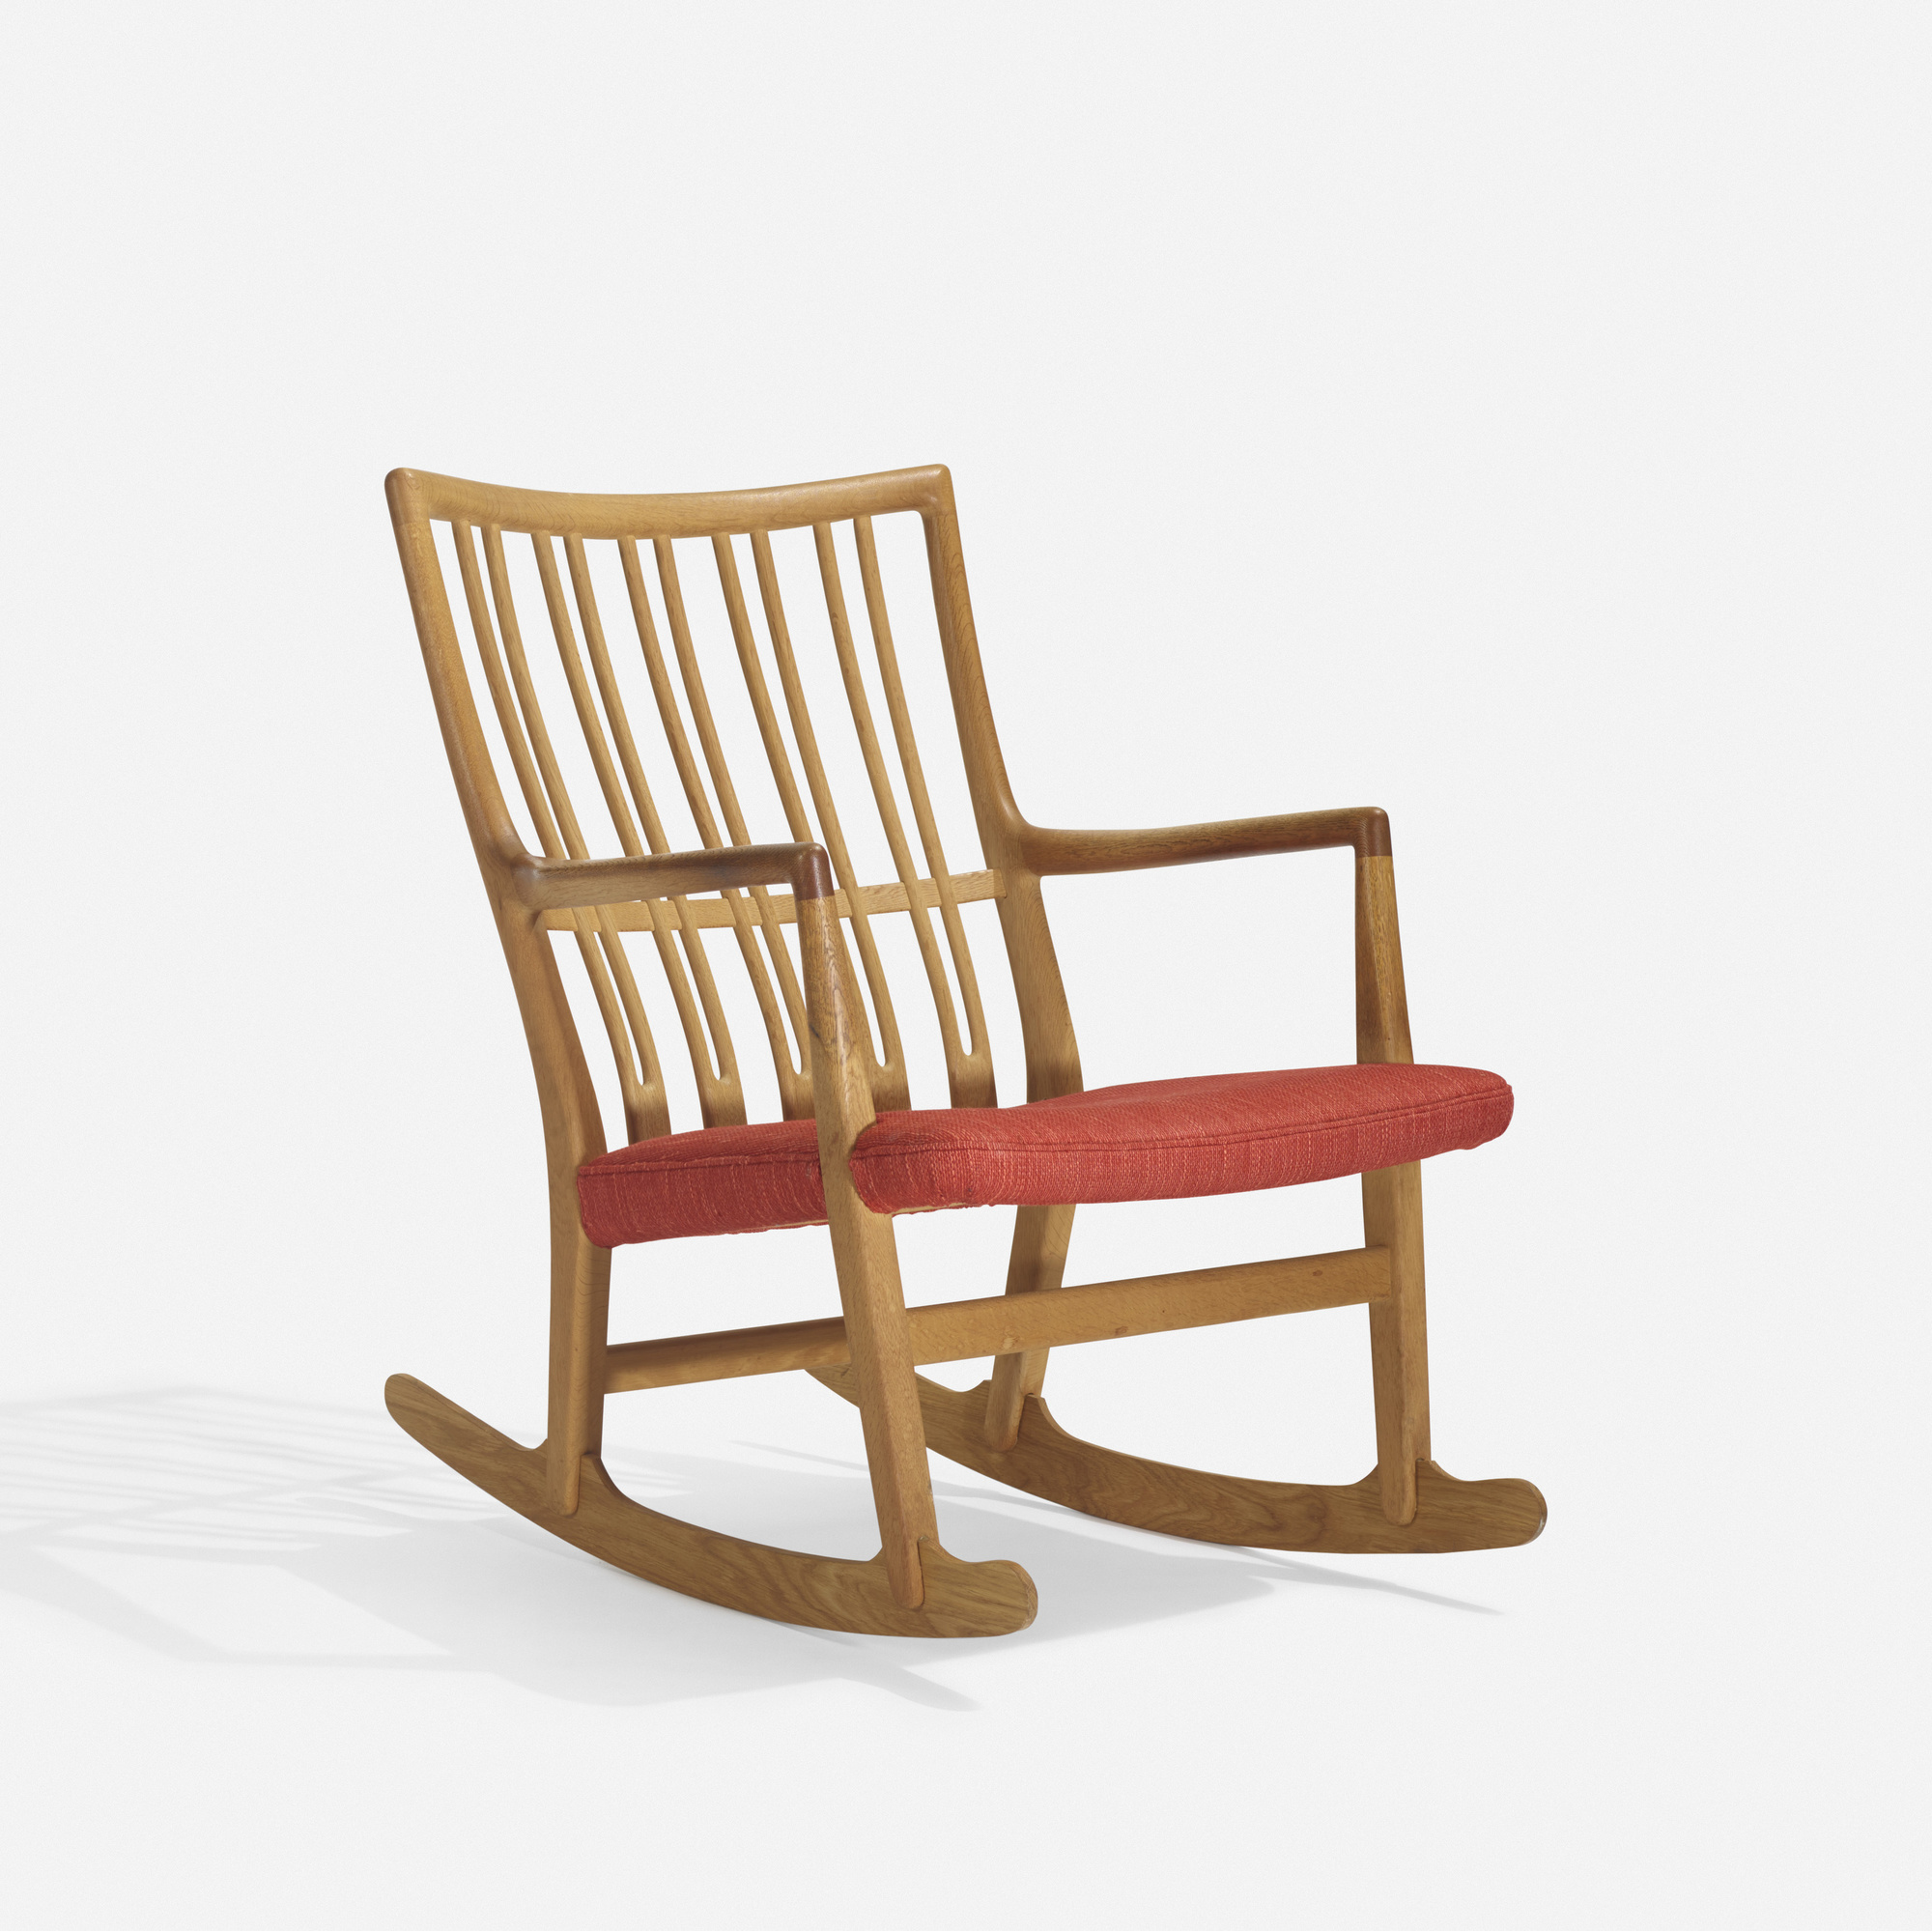 244: Hans J. Wegner / rocking chair (1 of 2)